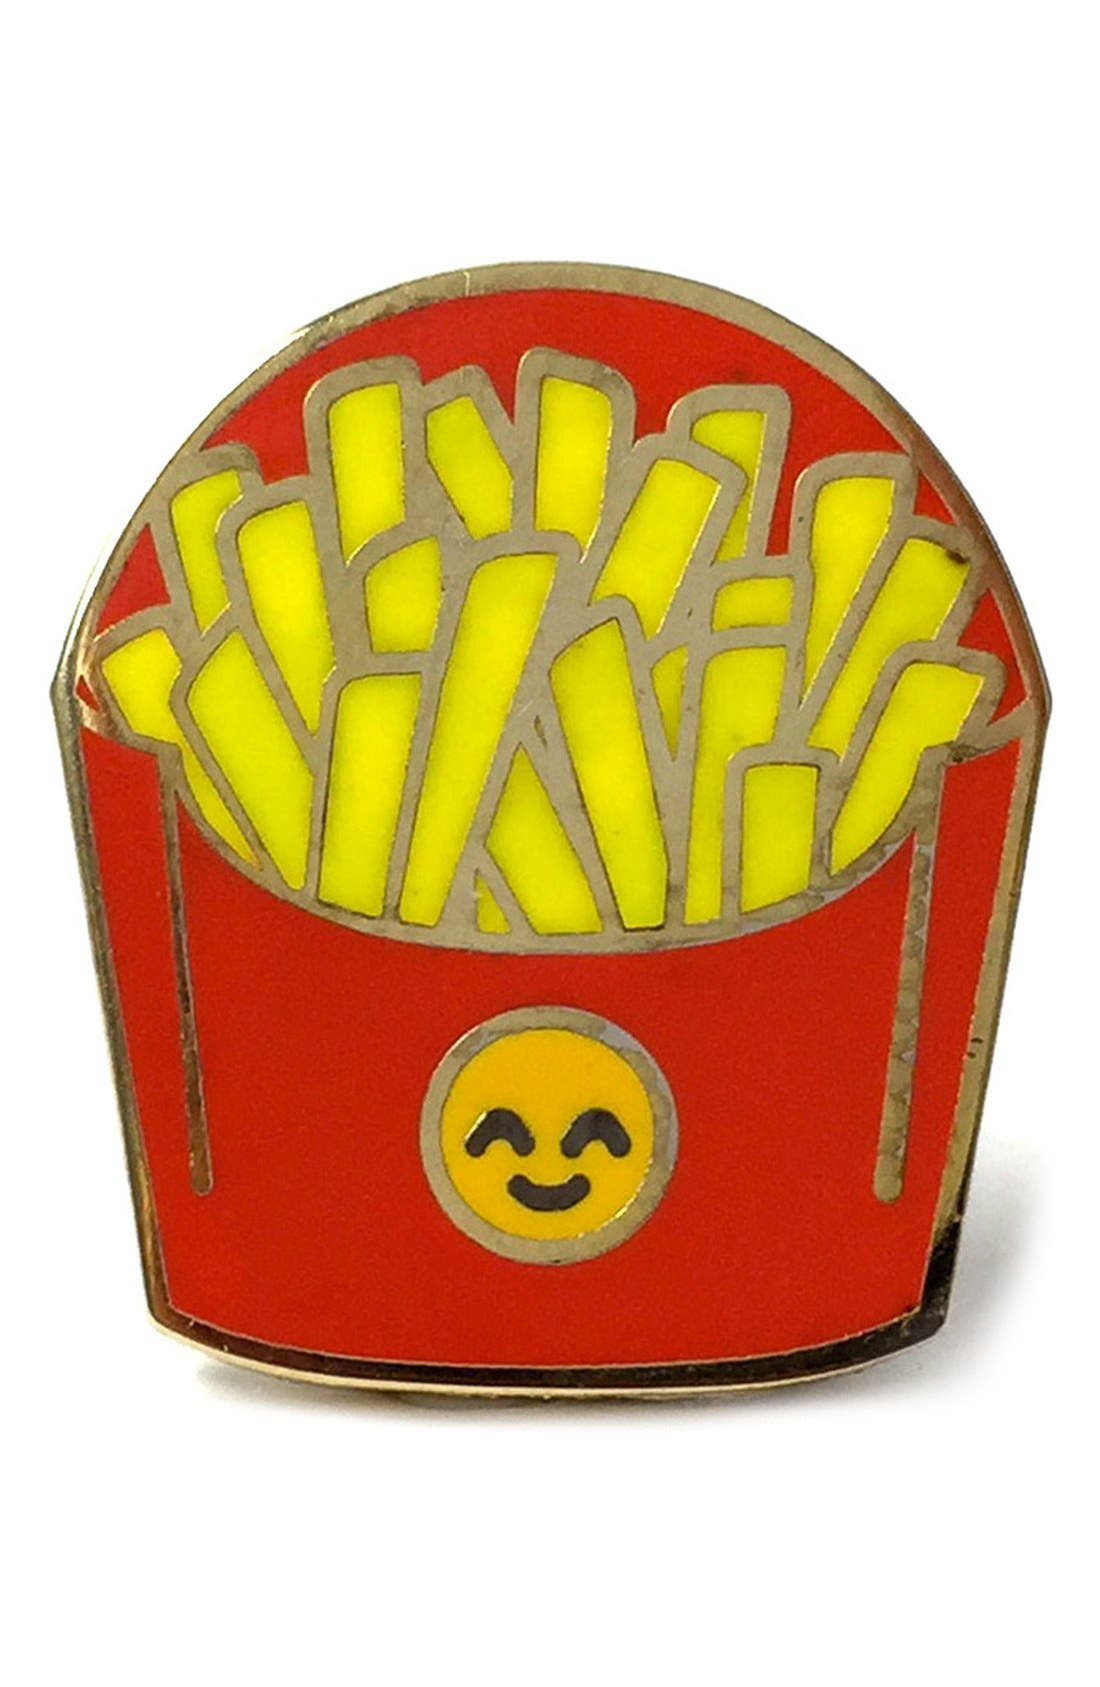 Alternate Image 1 Selected - PINTRILL 'Fries' Fashion Accessory Pin